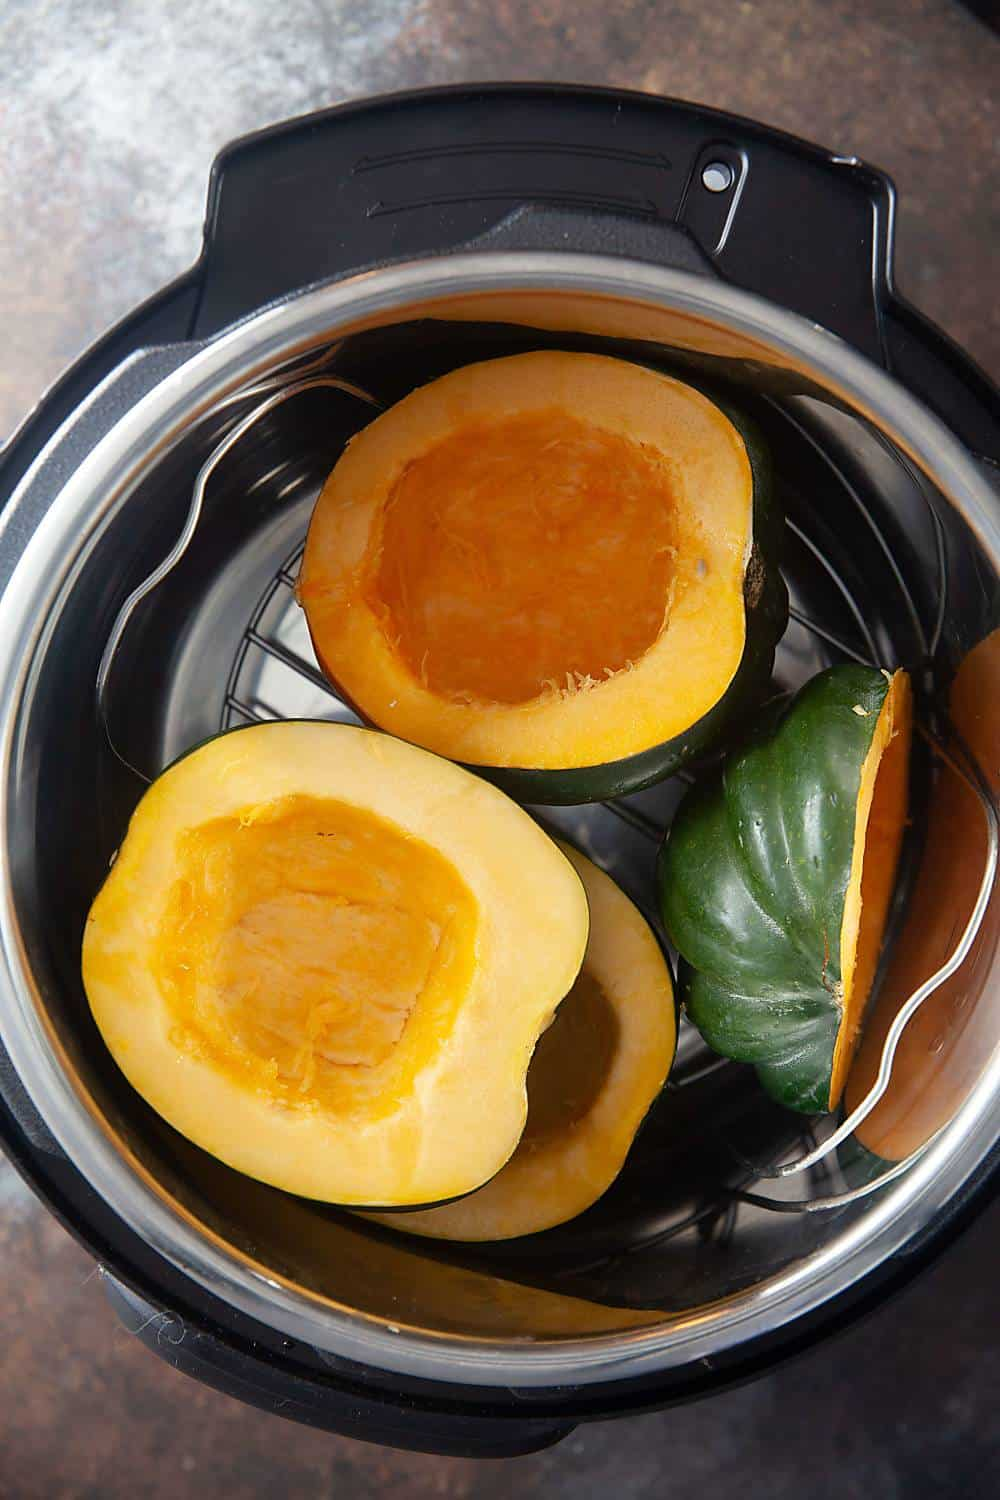 Cooking acorn squash in an Instant Pot is so fast!